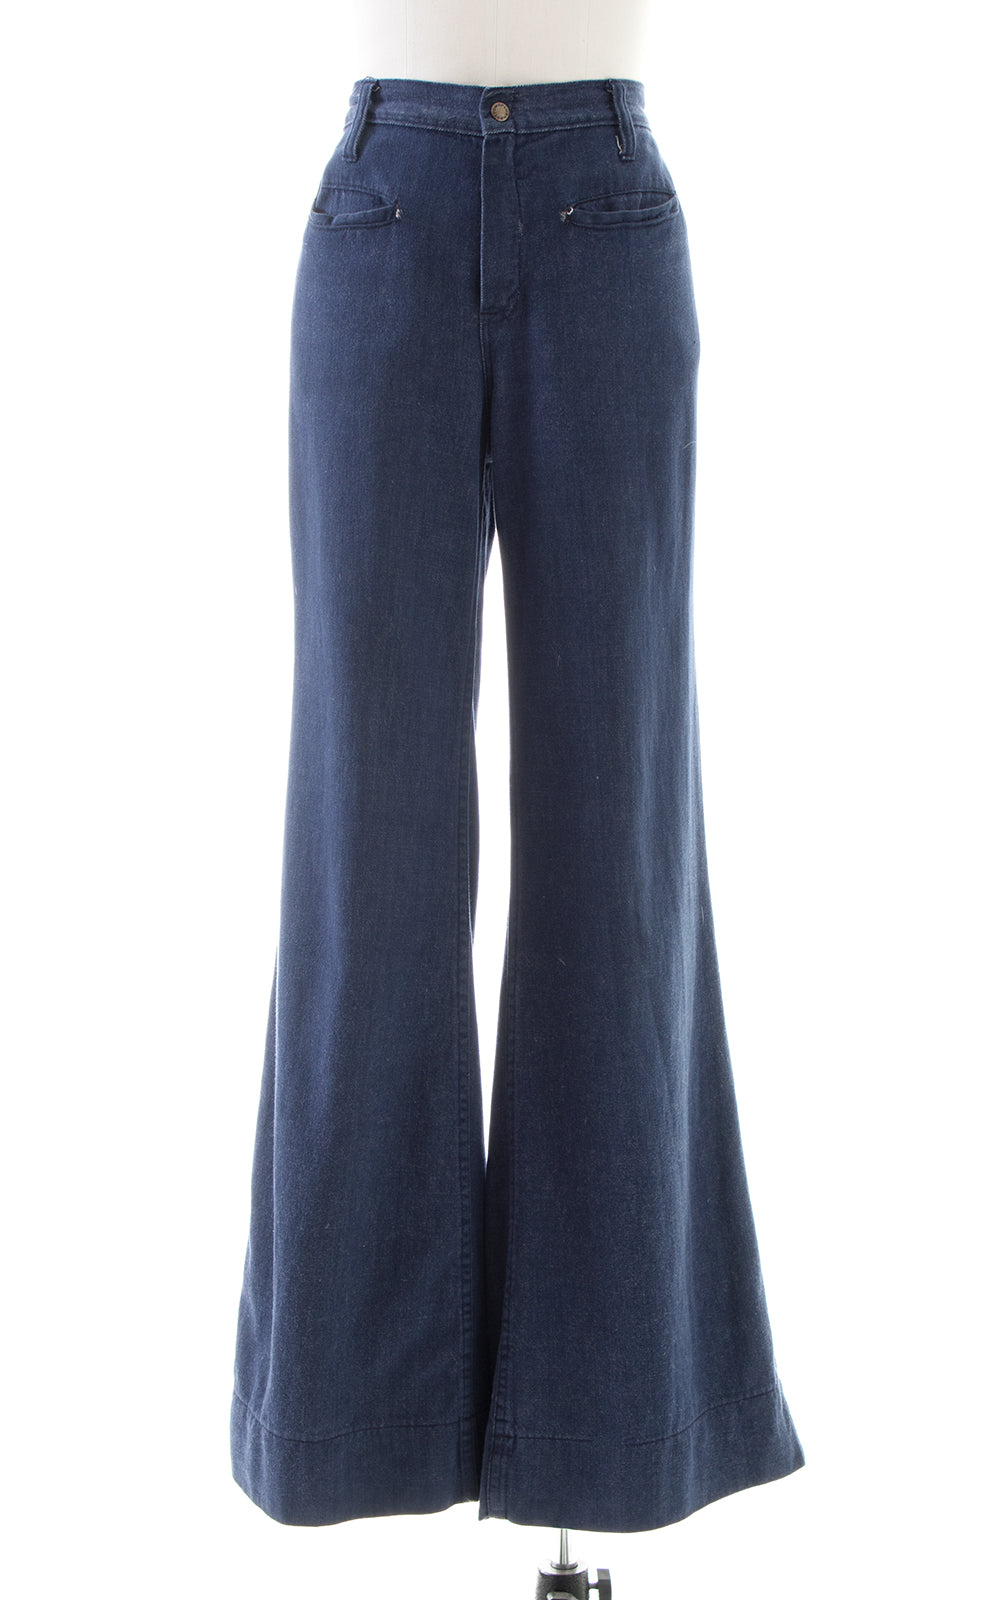 1970s Plush Bottoms Wide Leg Denim Jeans